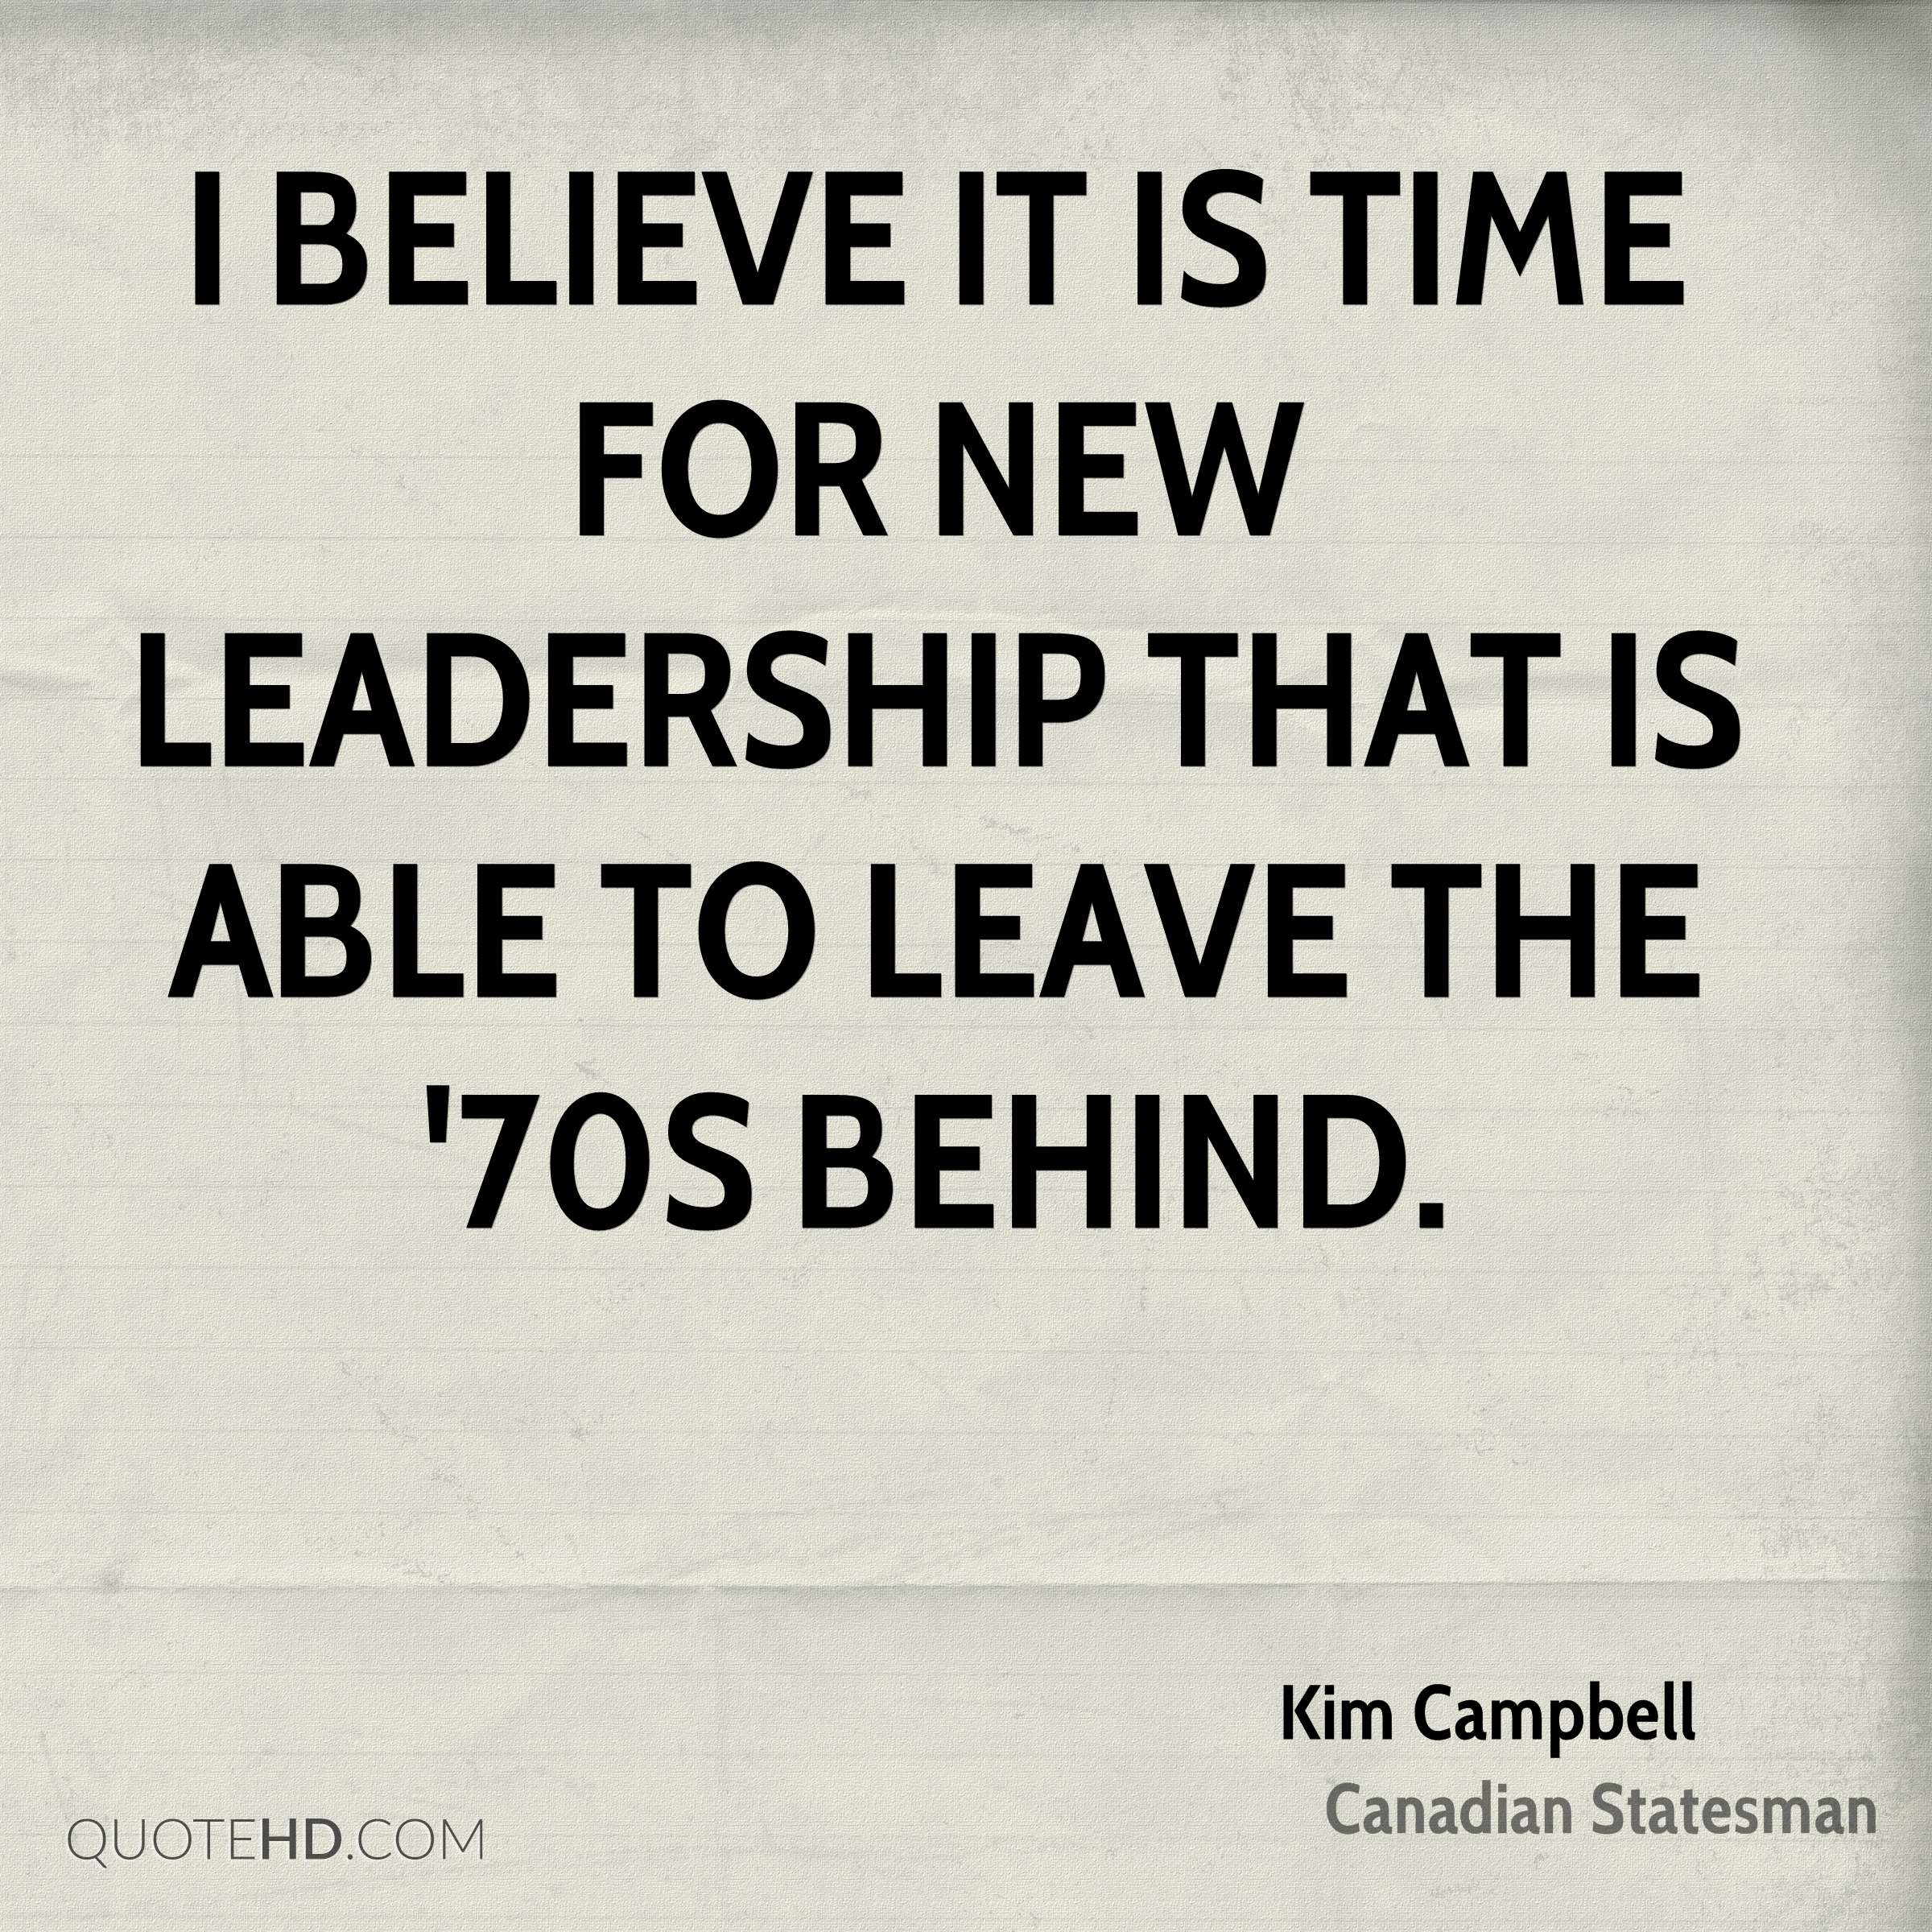 an analysis of the leadership of kim campbell in canada Justin trudeau represents a generational change in leadership in canada — at 43 kim campbell, born in 1947, was canada's first gen-xer pm by: bob cox.